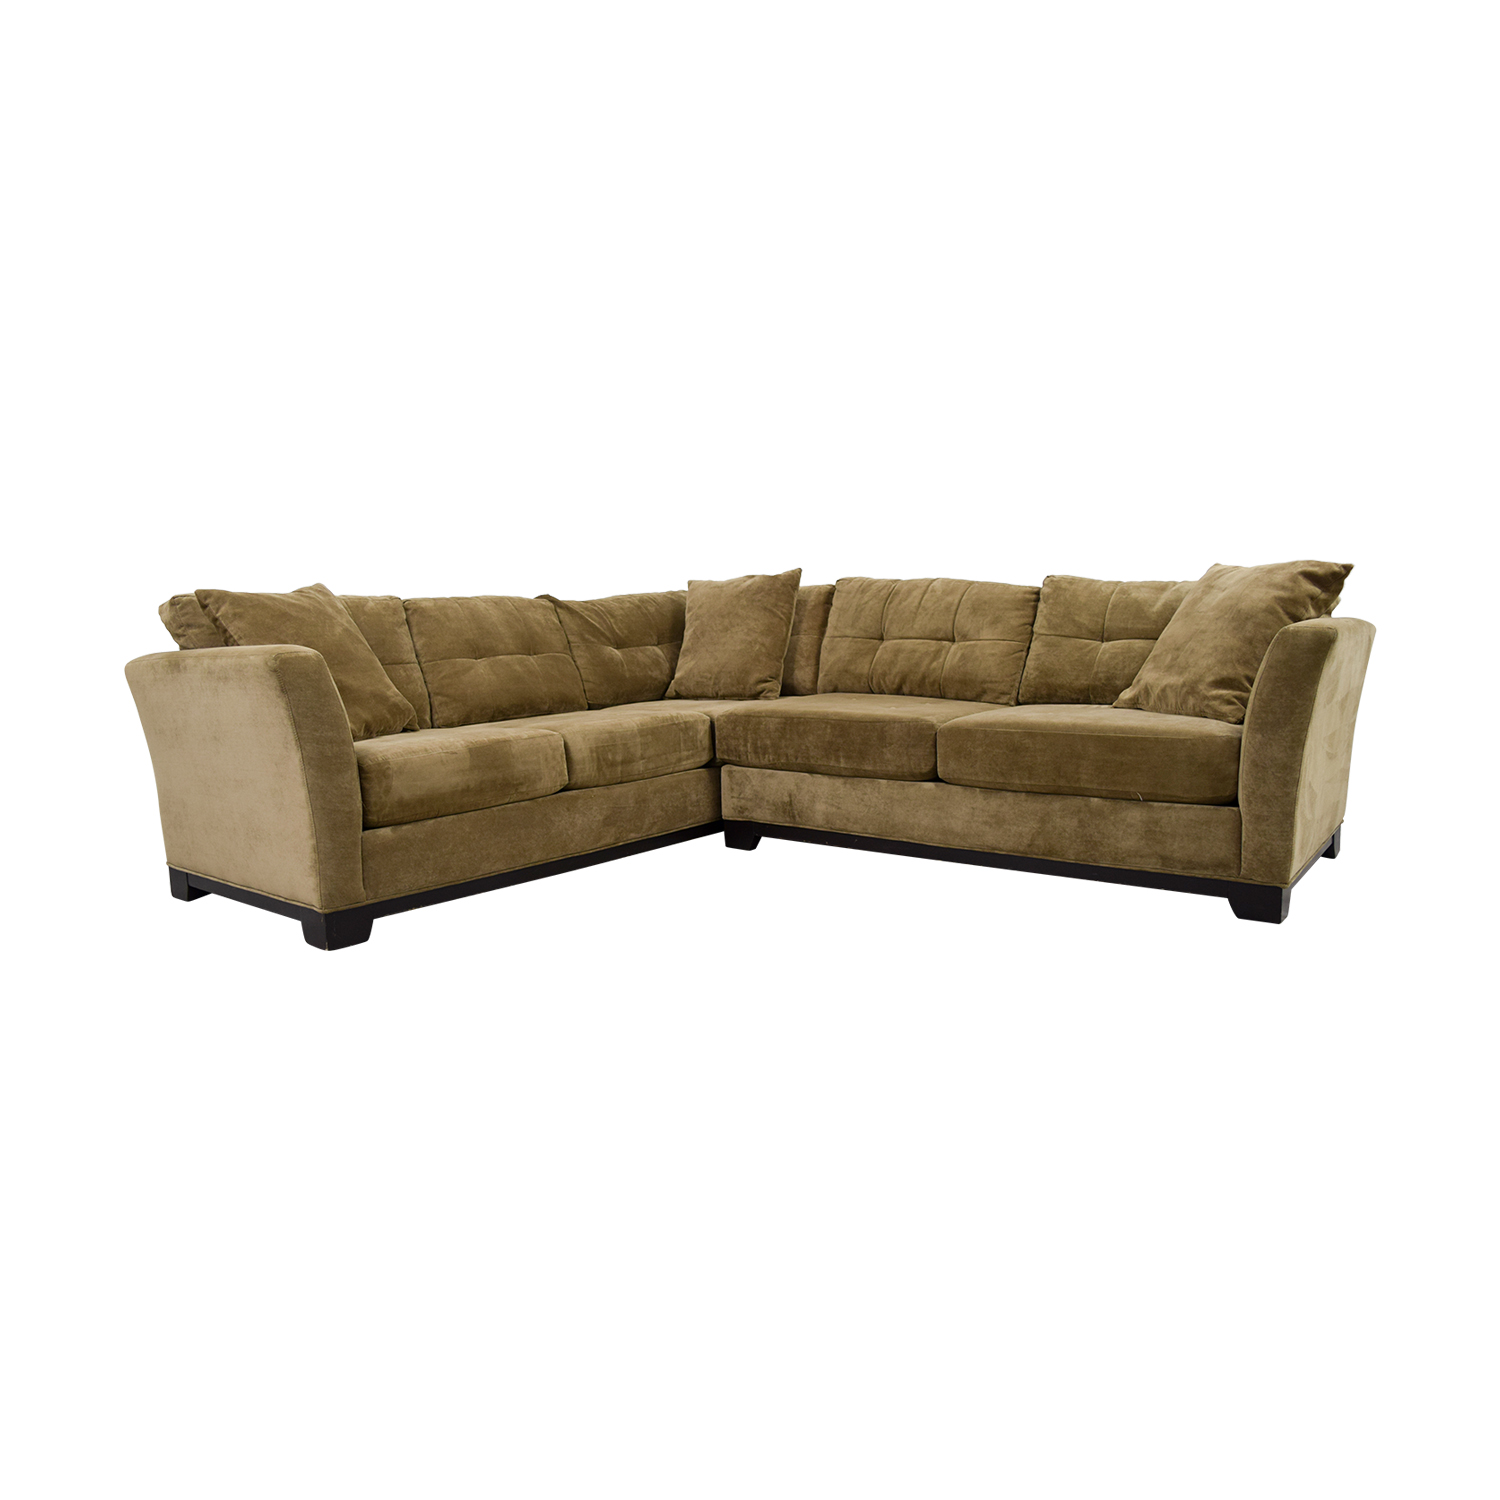 76% OFF - Macy\'s Macy\'s Elliot Fabric Microfiber Two-Piece Sectional ...